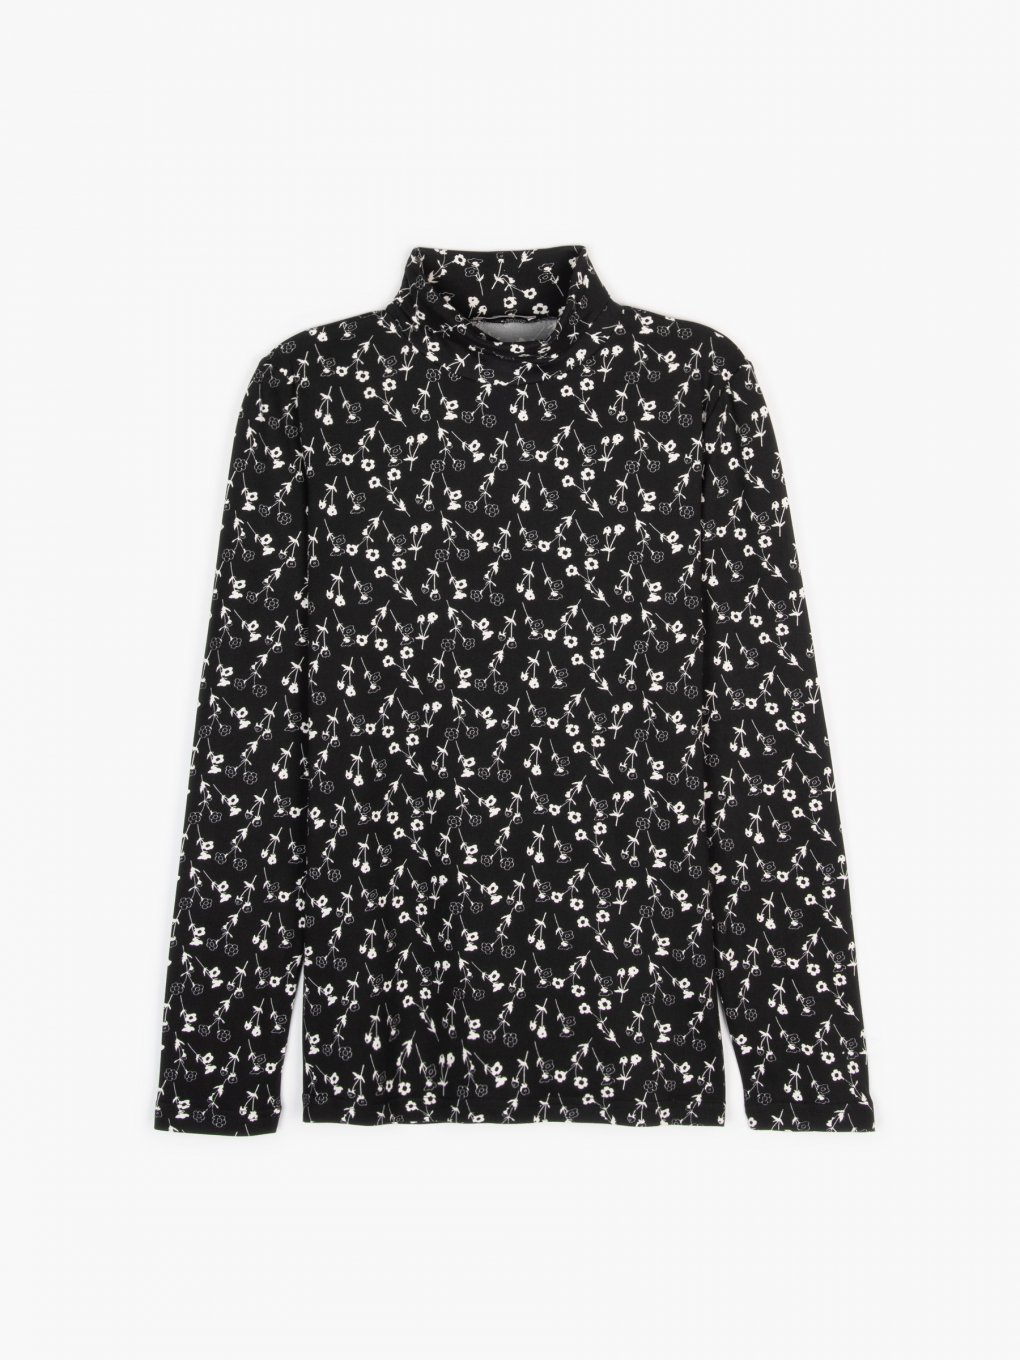 Soft rollneck with floral print